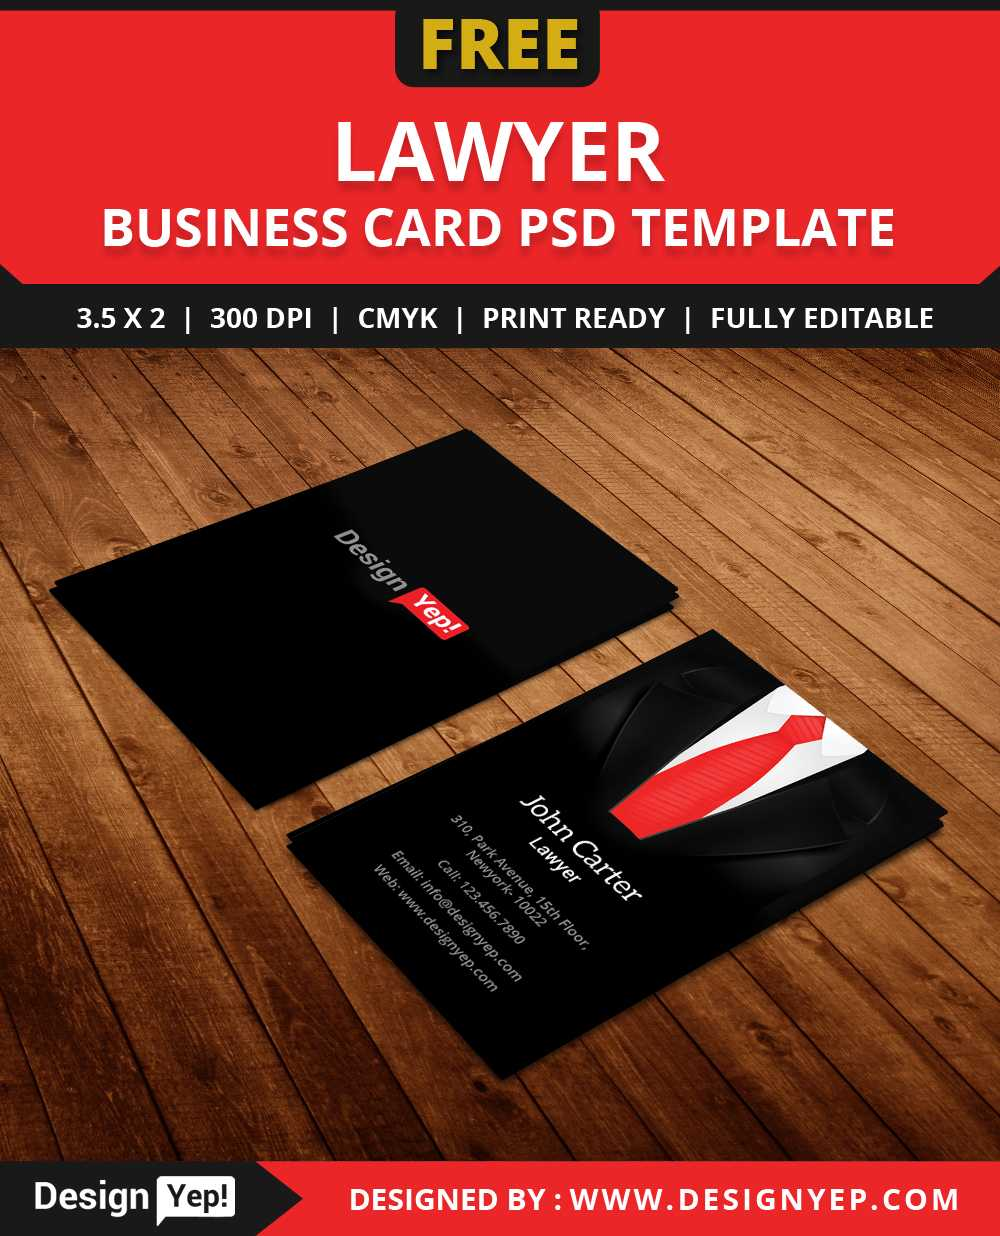 Free Lawyer Business Card Template Psd - Designyep with Name Card Design Template Psd